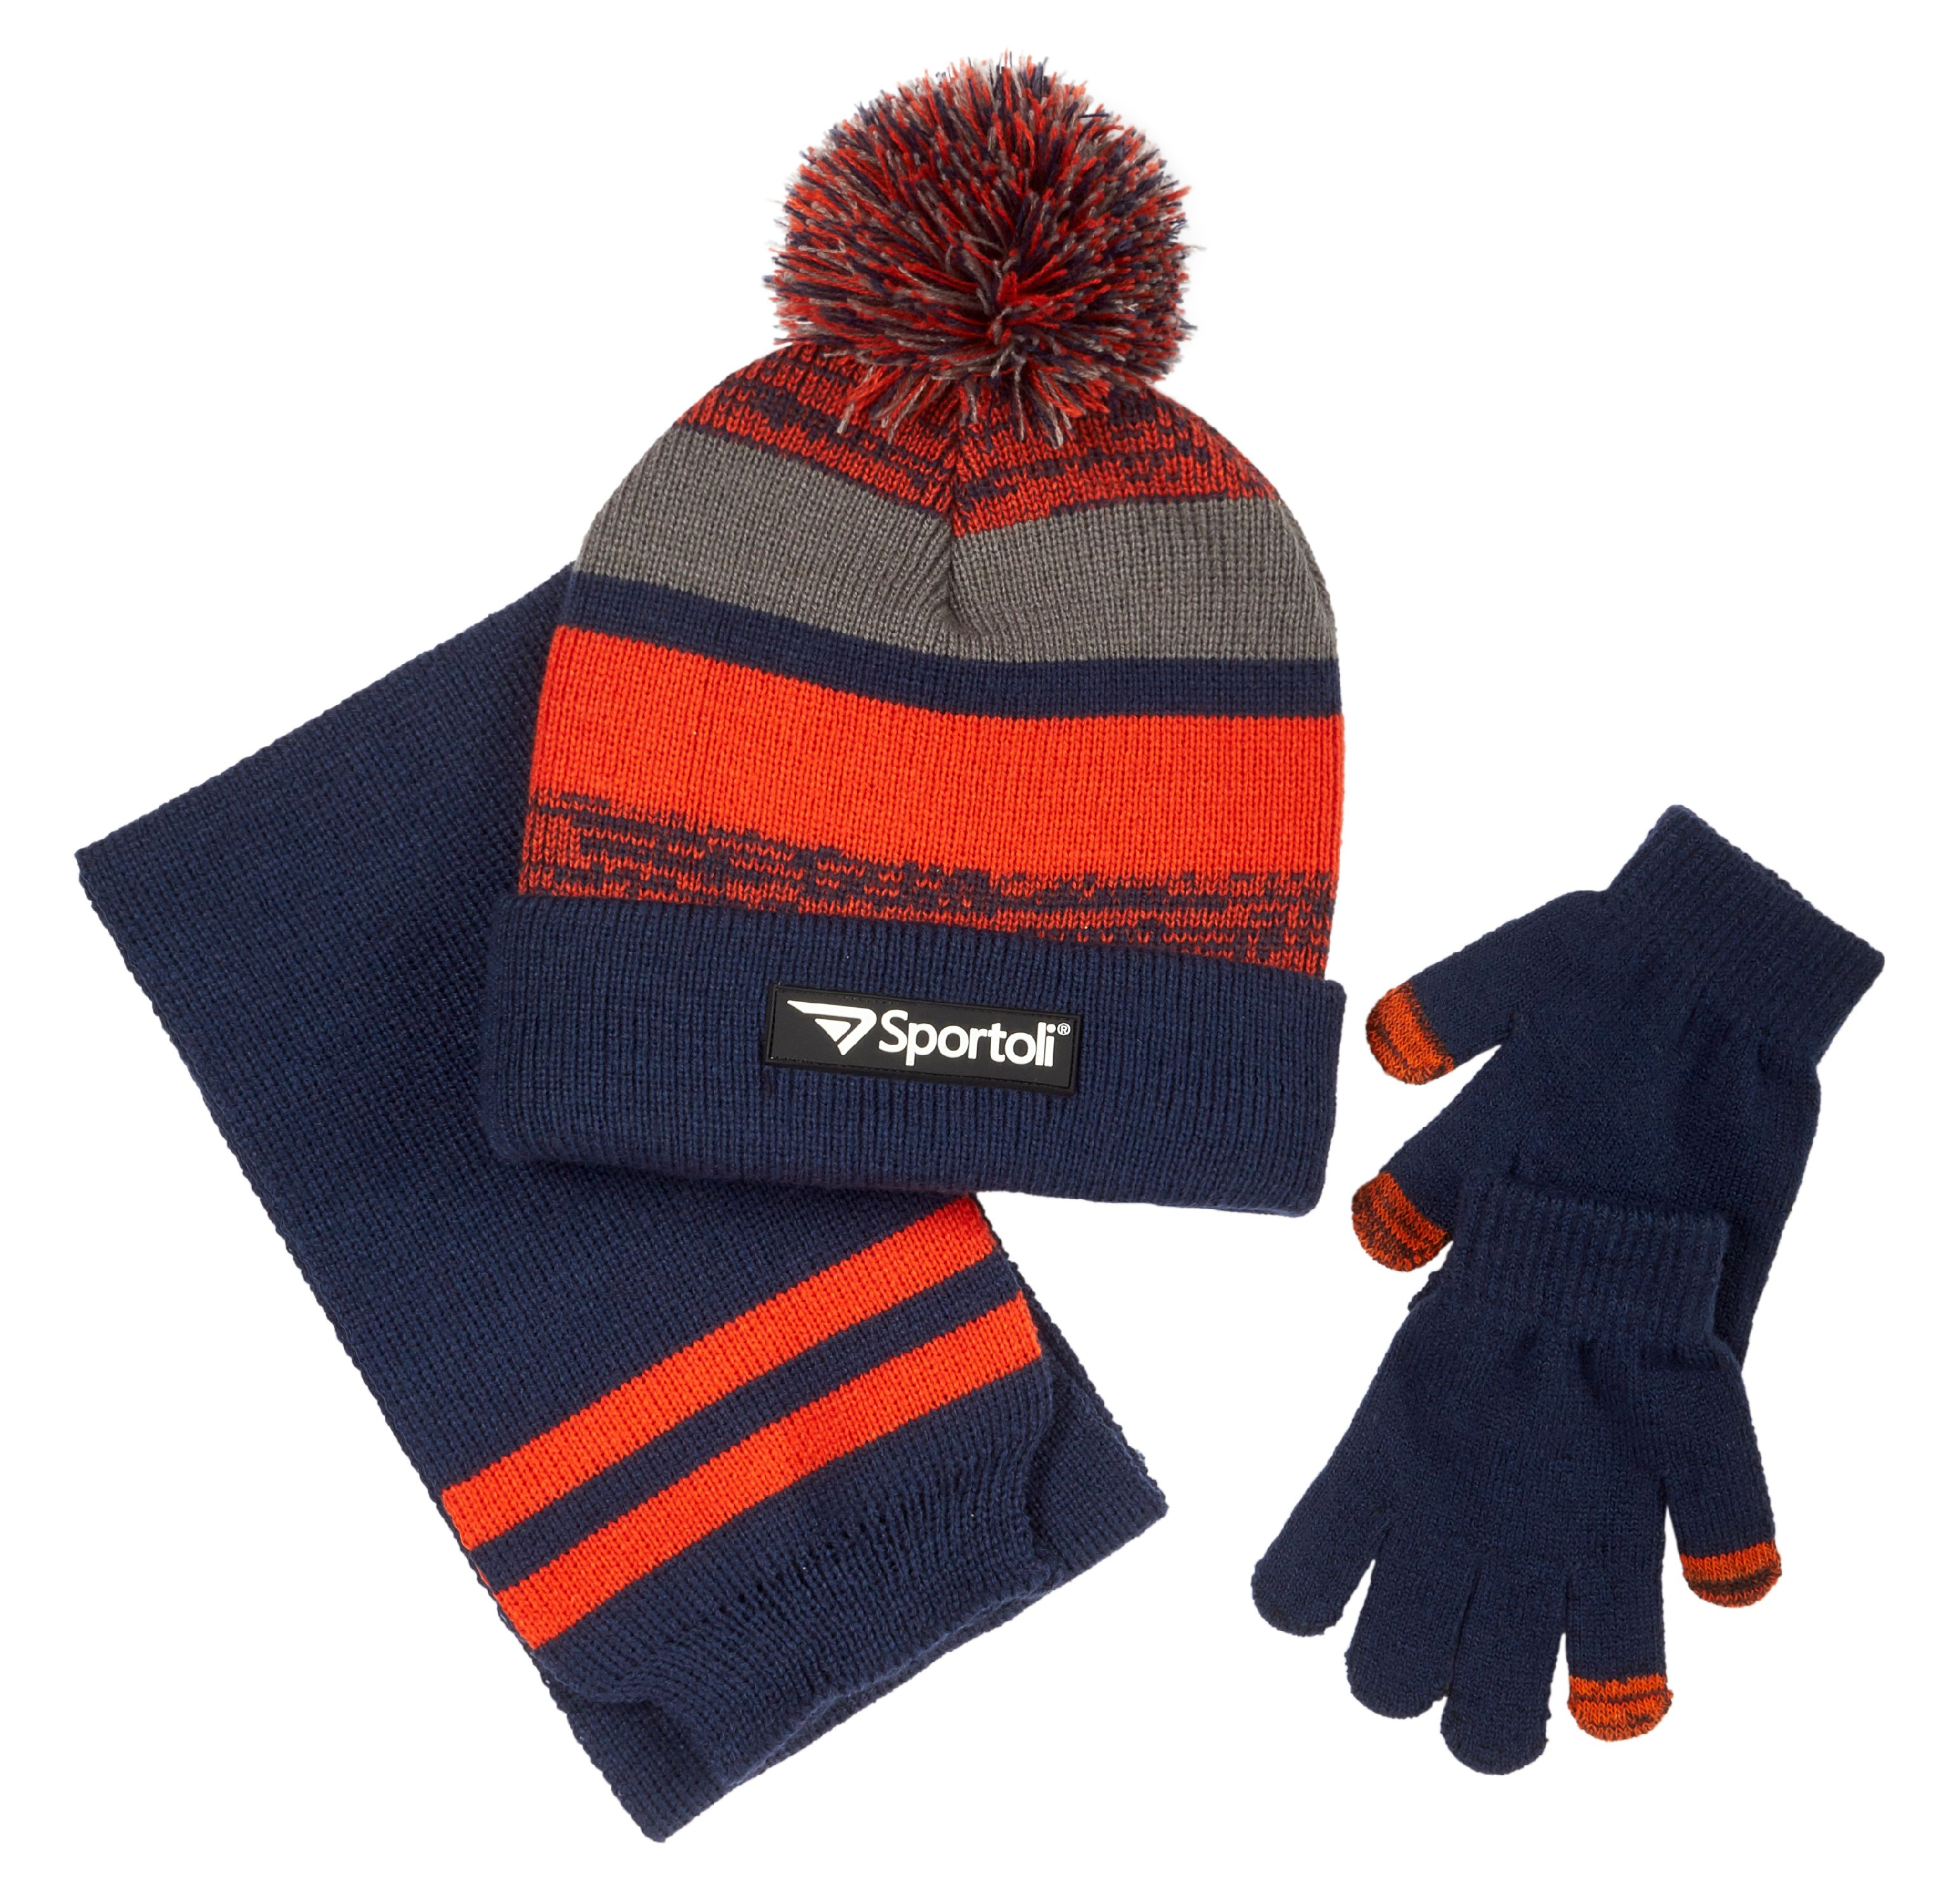 Sportoli Men's and Boys' Kids 3-Piece Striped Knit Cold Weather Accessory Set Warm Fleece Lined Pull On Hat Scarf and Gloves